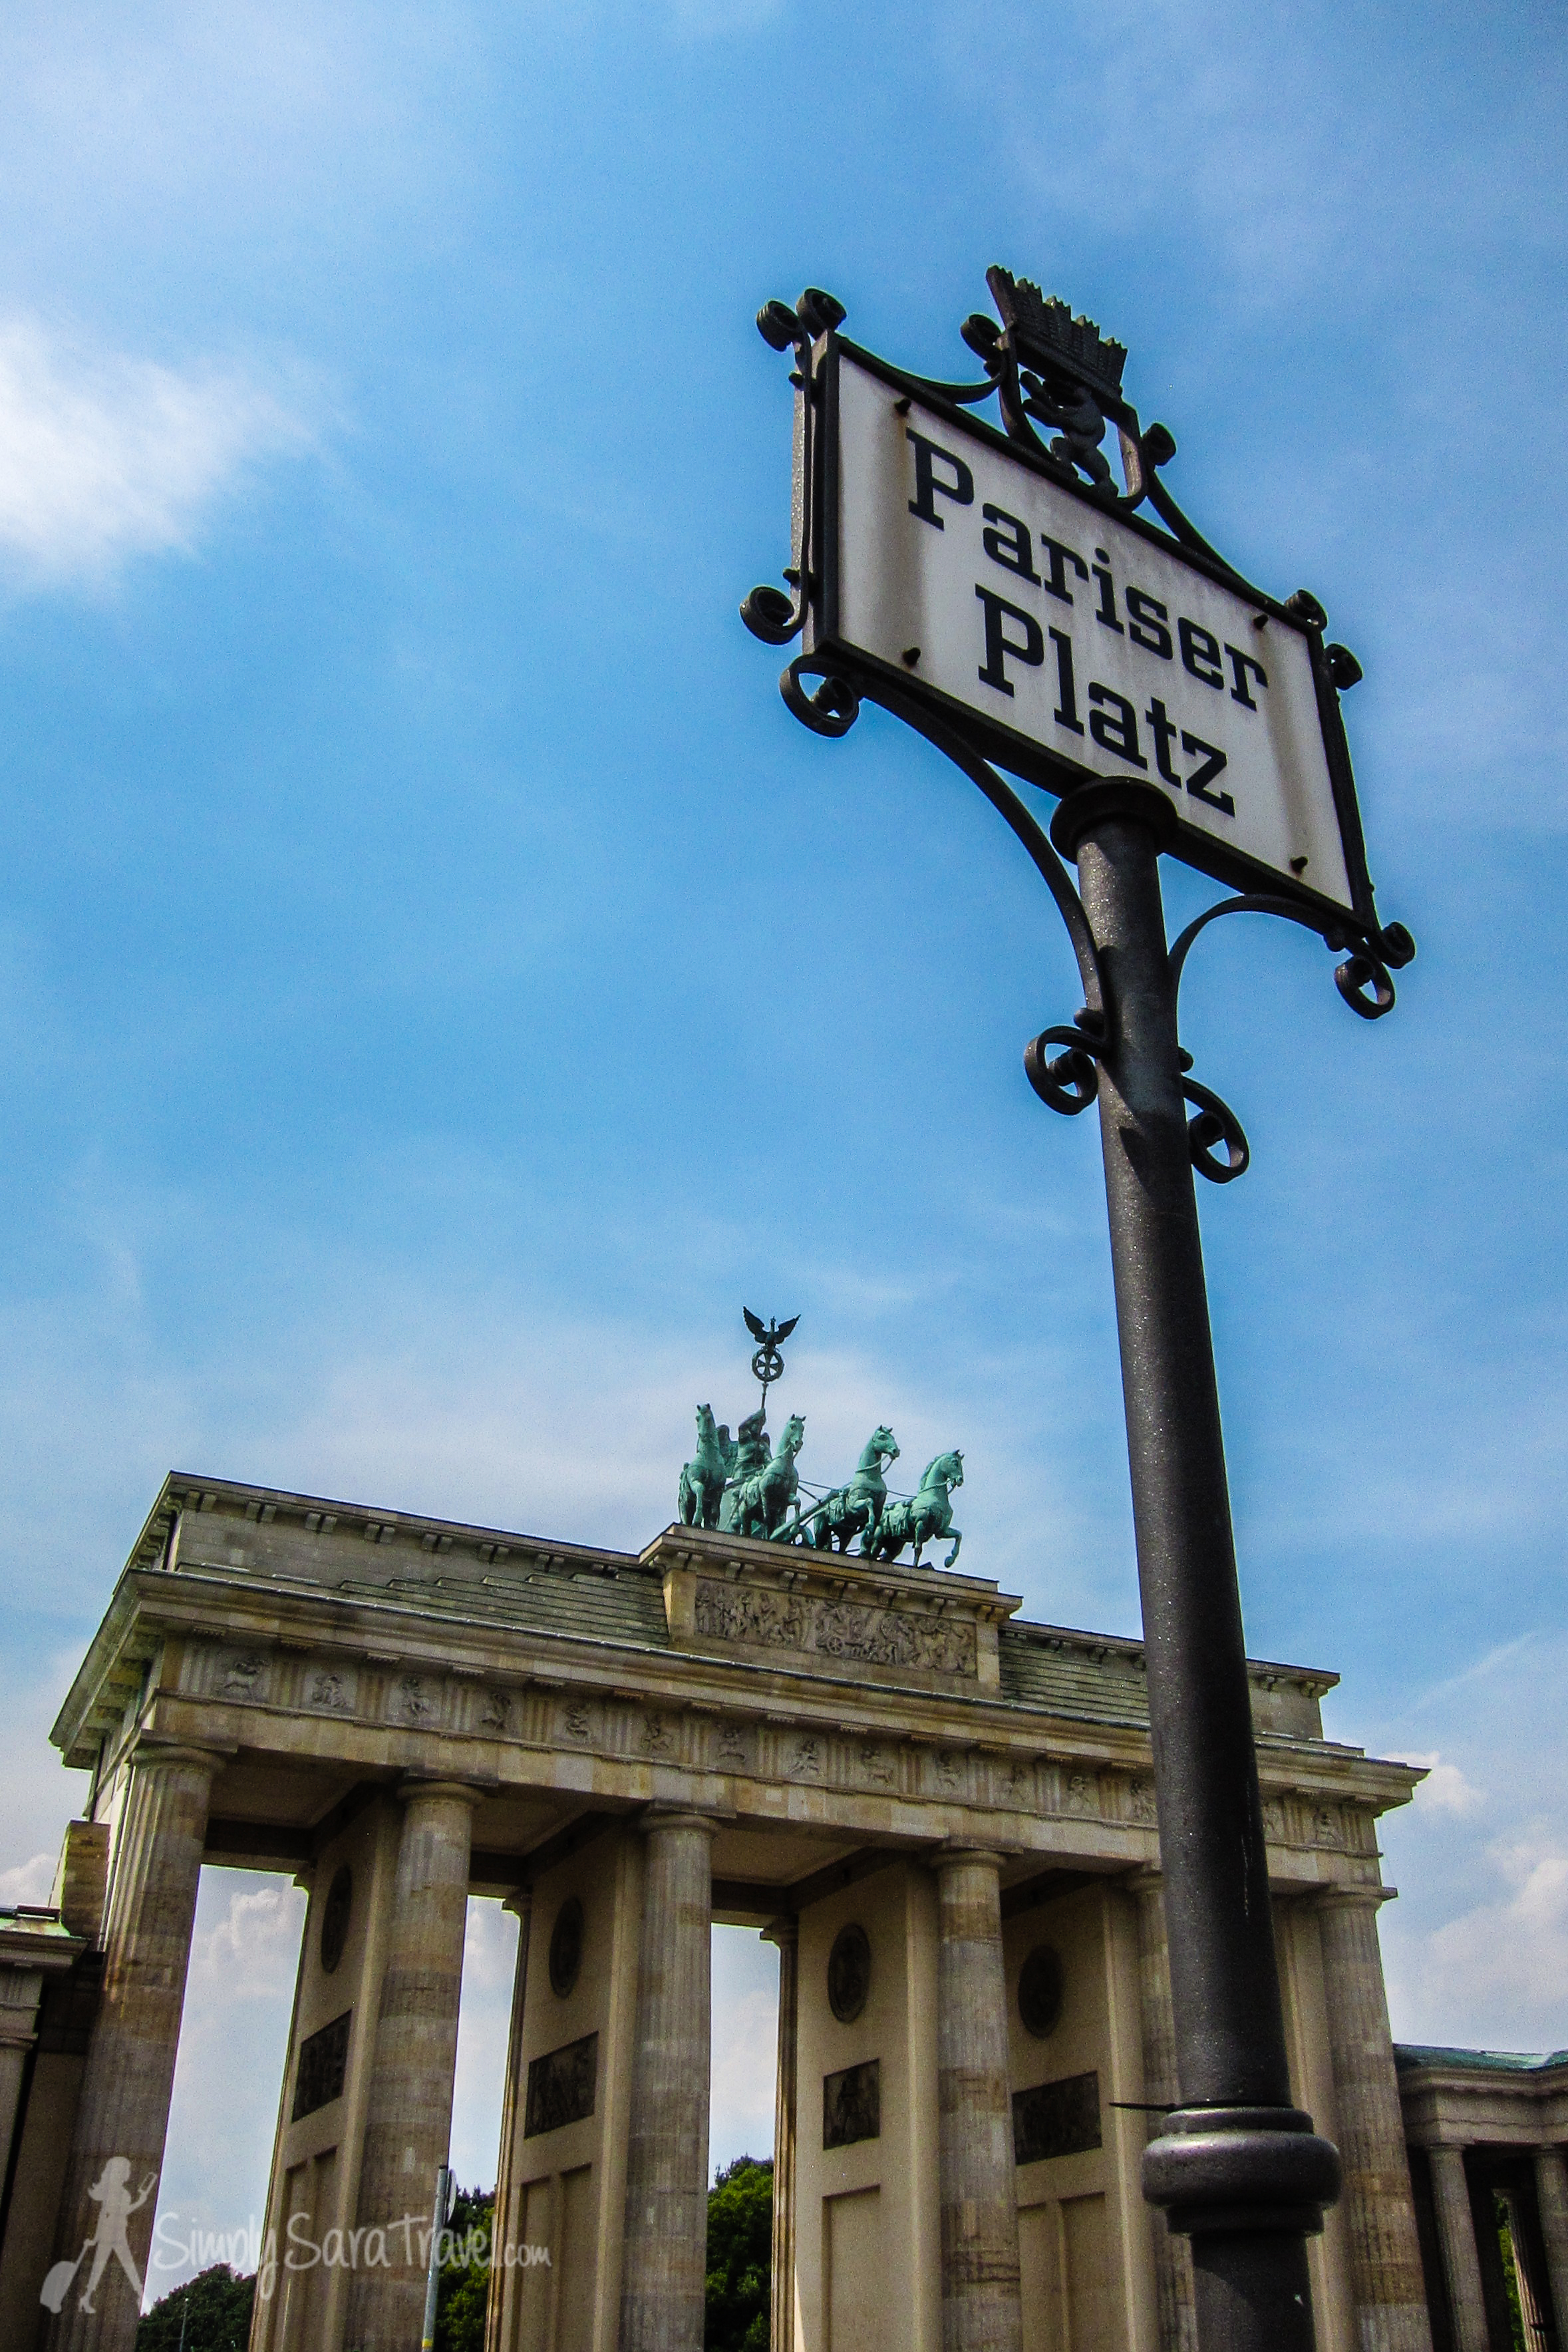 A connection to Paris right at the famous Brandburg Gate! (Though this square is named Pariser Platz in celebration of victory in overthrowing Napoleon so not the warmest welcome to the French.)